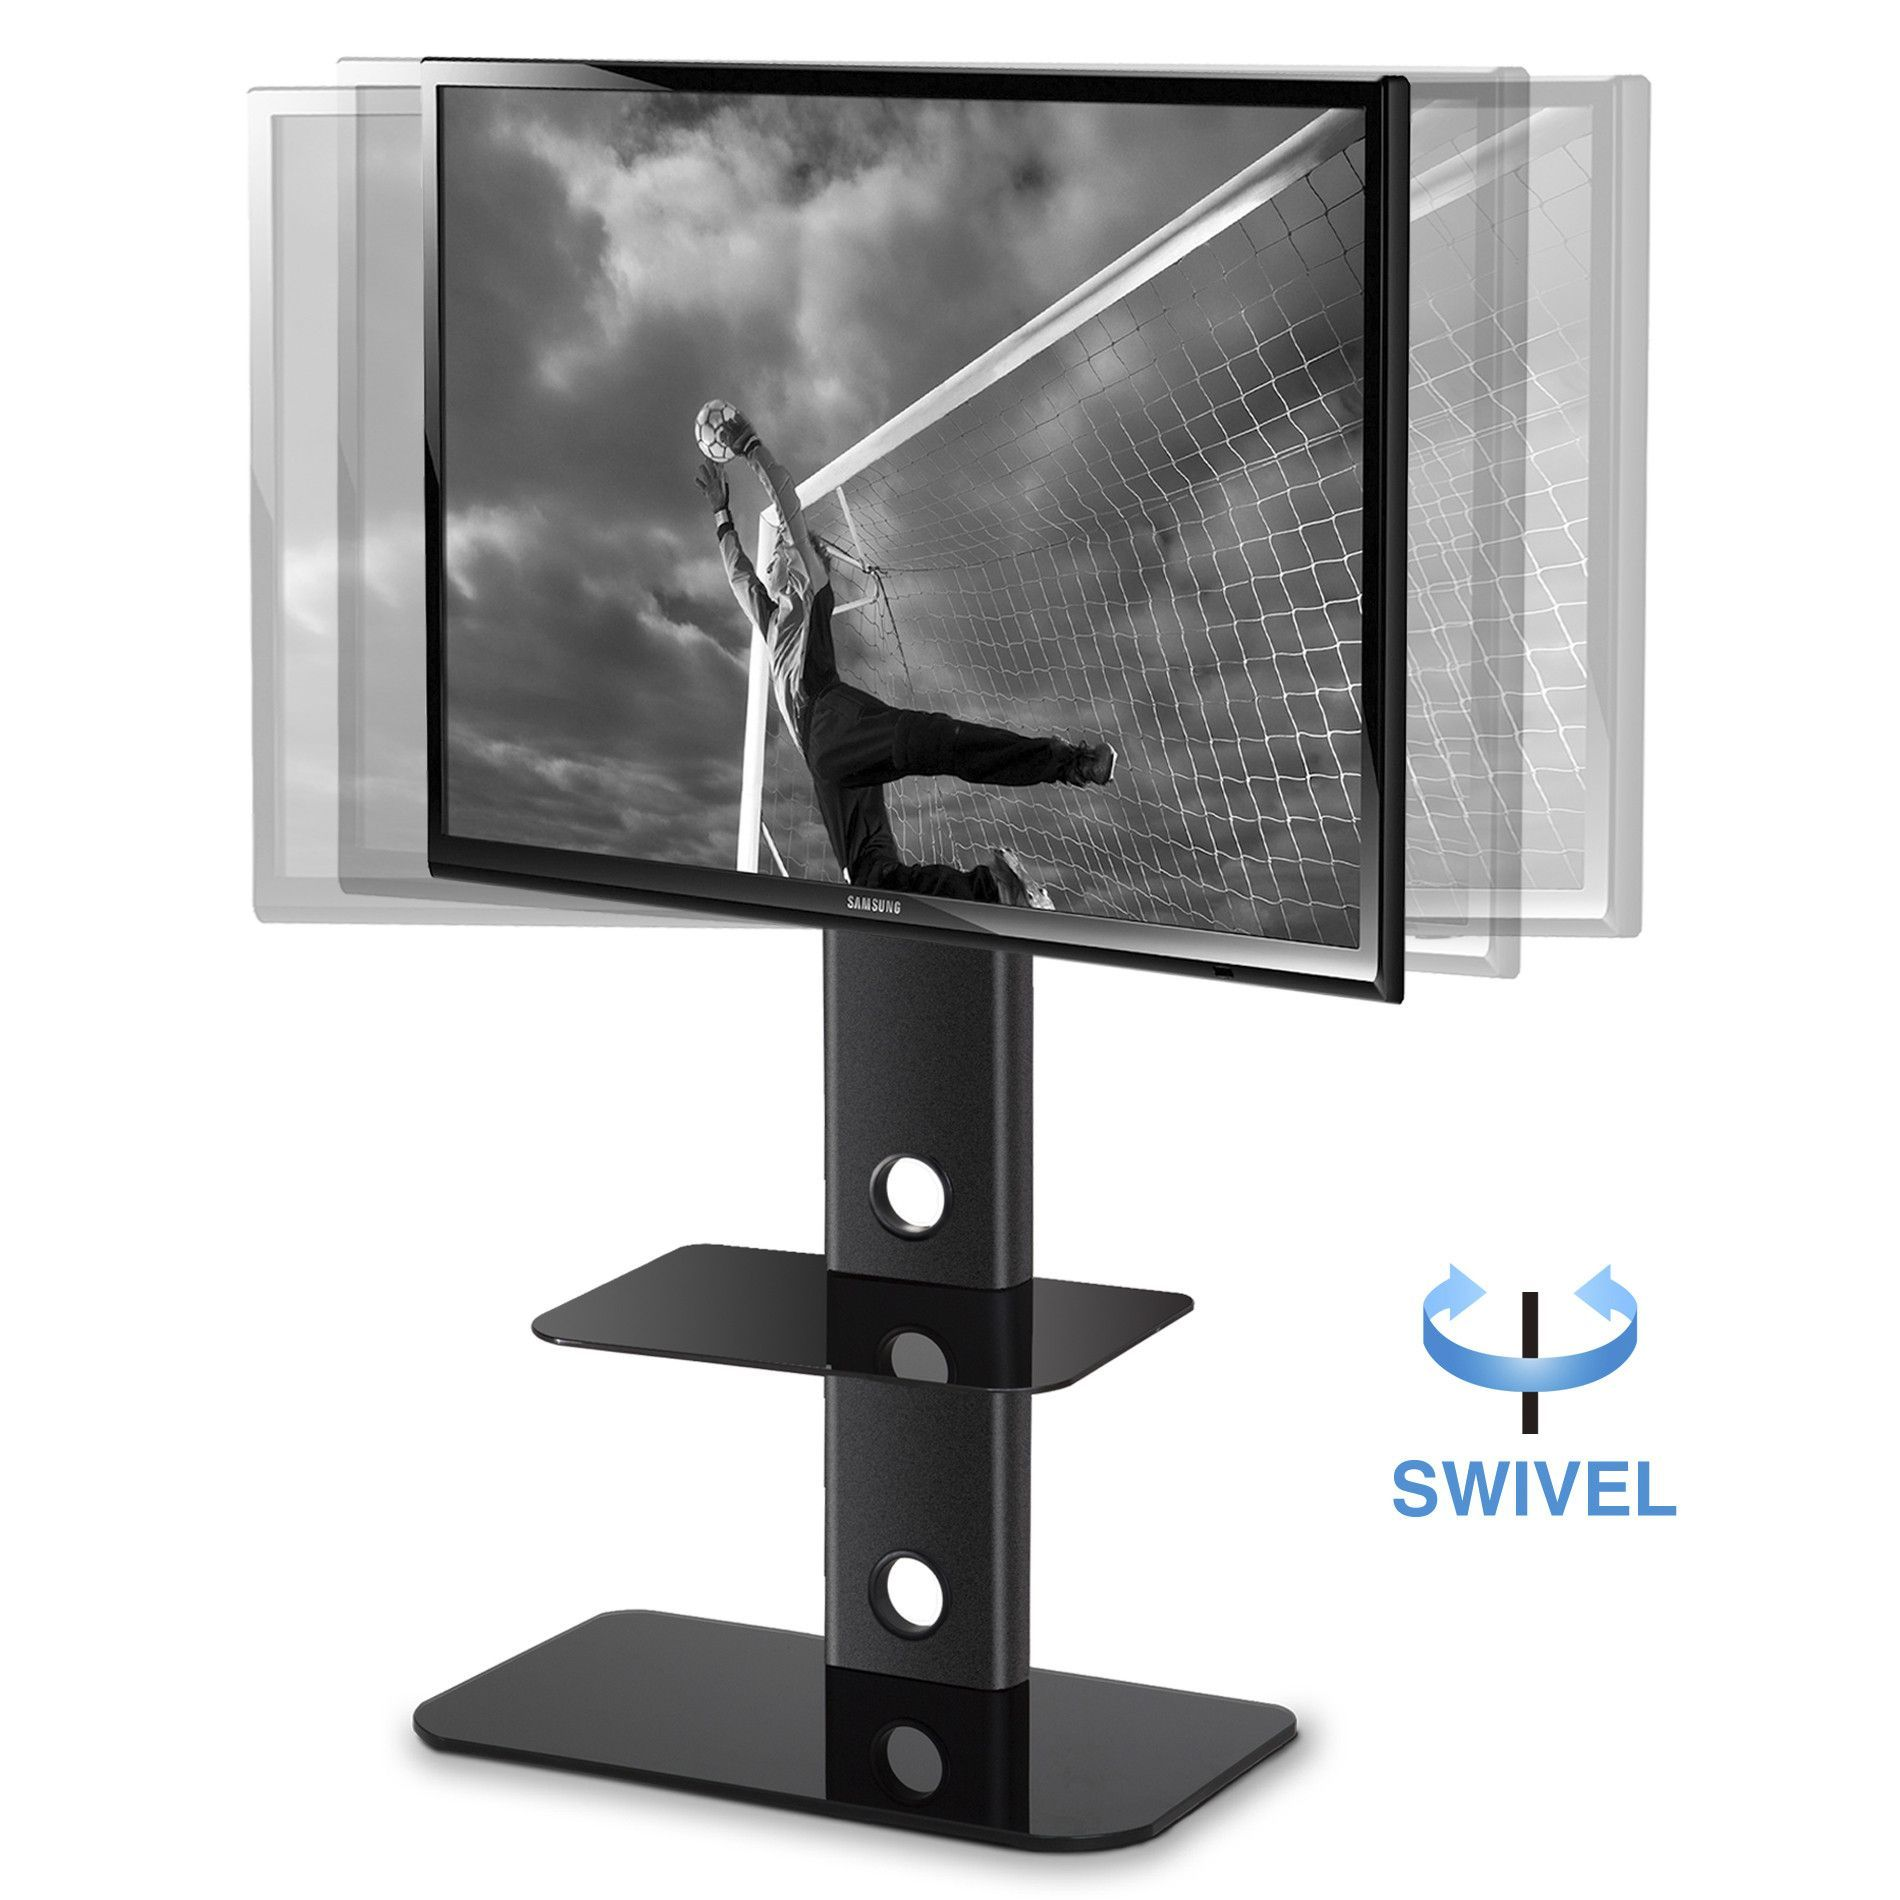 Fitueyes Tv Stand With Swivel Mount Component Shelf For 32 60 For Led Lcd Tv Tt214001mb Tv Stand With Swivel Mount Tv Stand With Mount Swivel Tv Stand